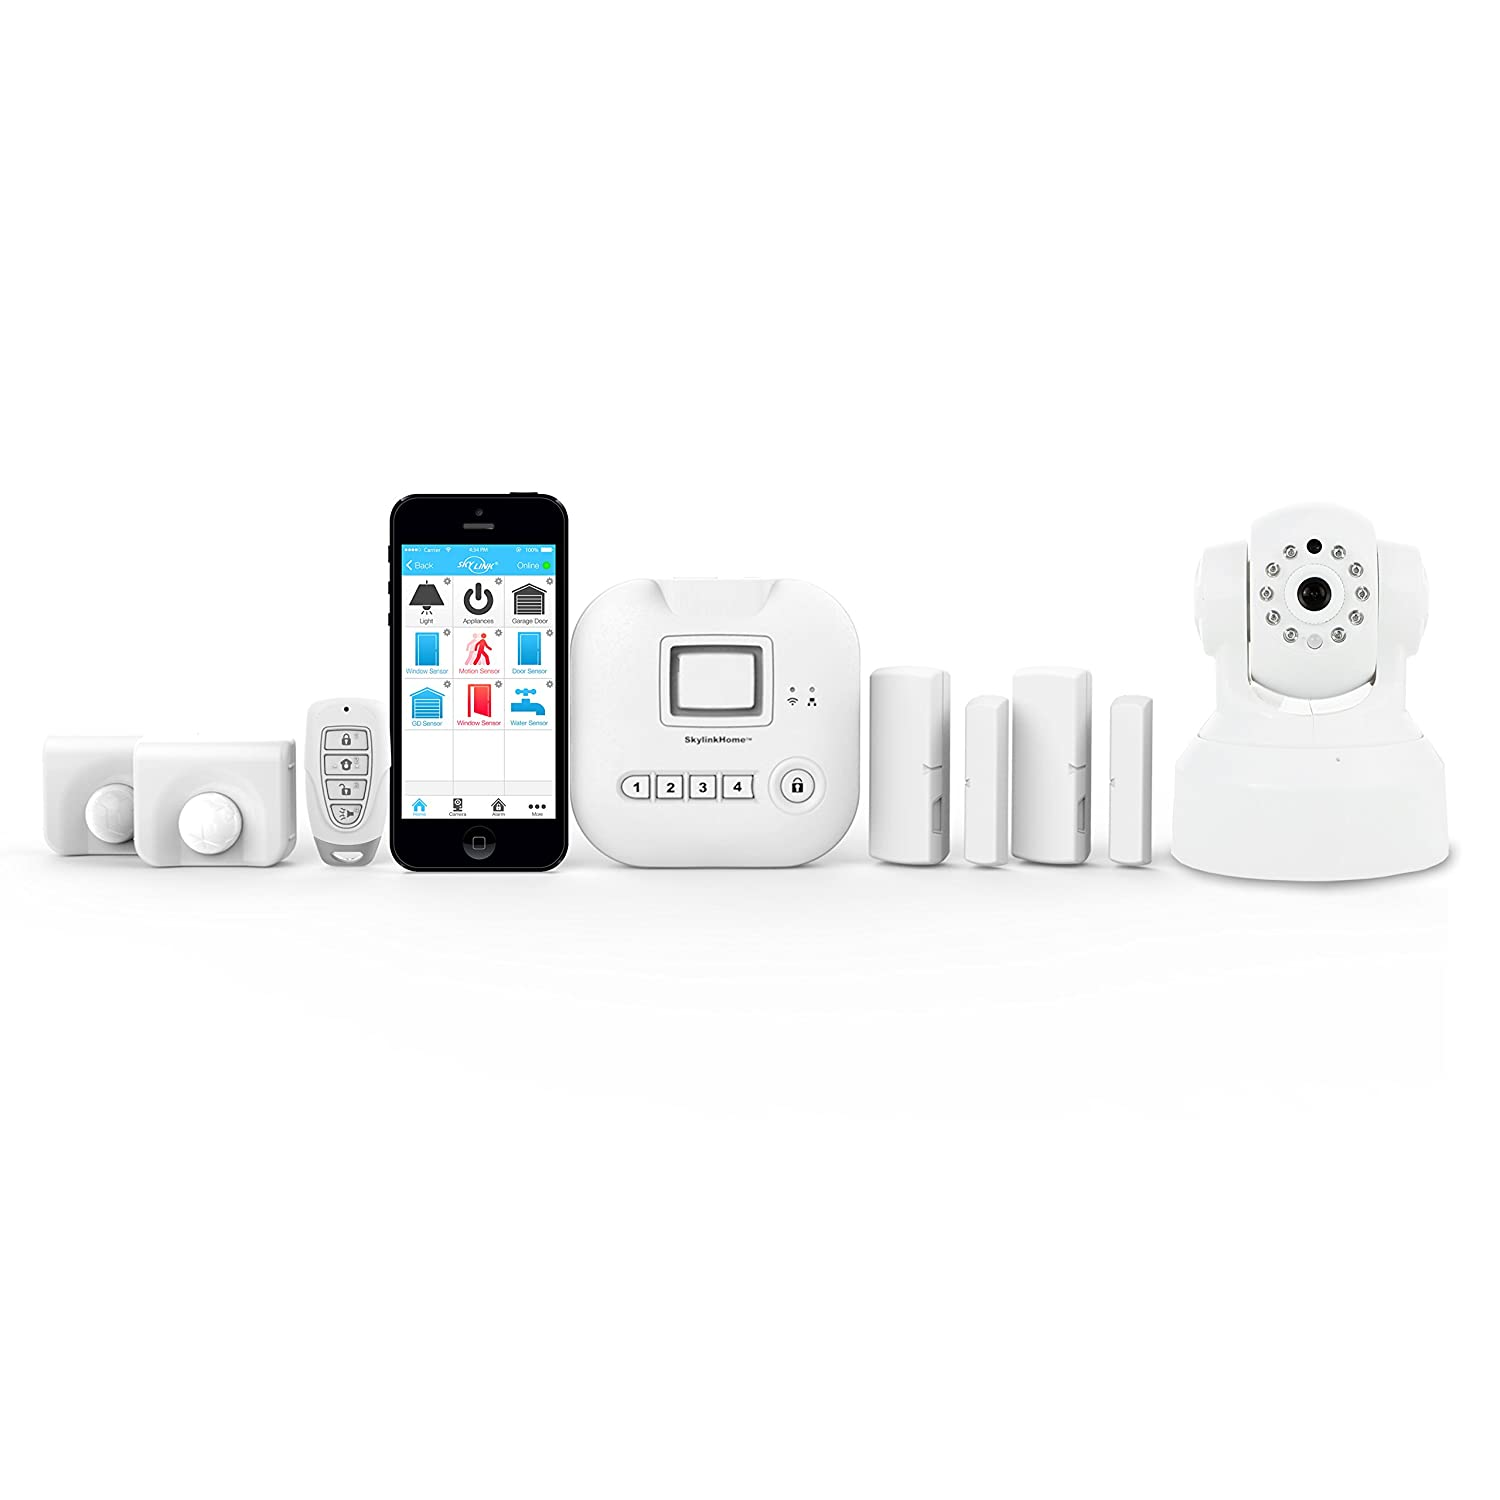 Skylink SK-250 Alarm Camera Deluxe Connected Wireless Security Home Automation System, Ios Iphone Android Smartphone, Echo Alexa and Ifttt Compatible with No Monthly Fees. White